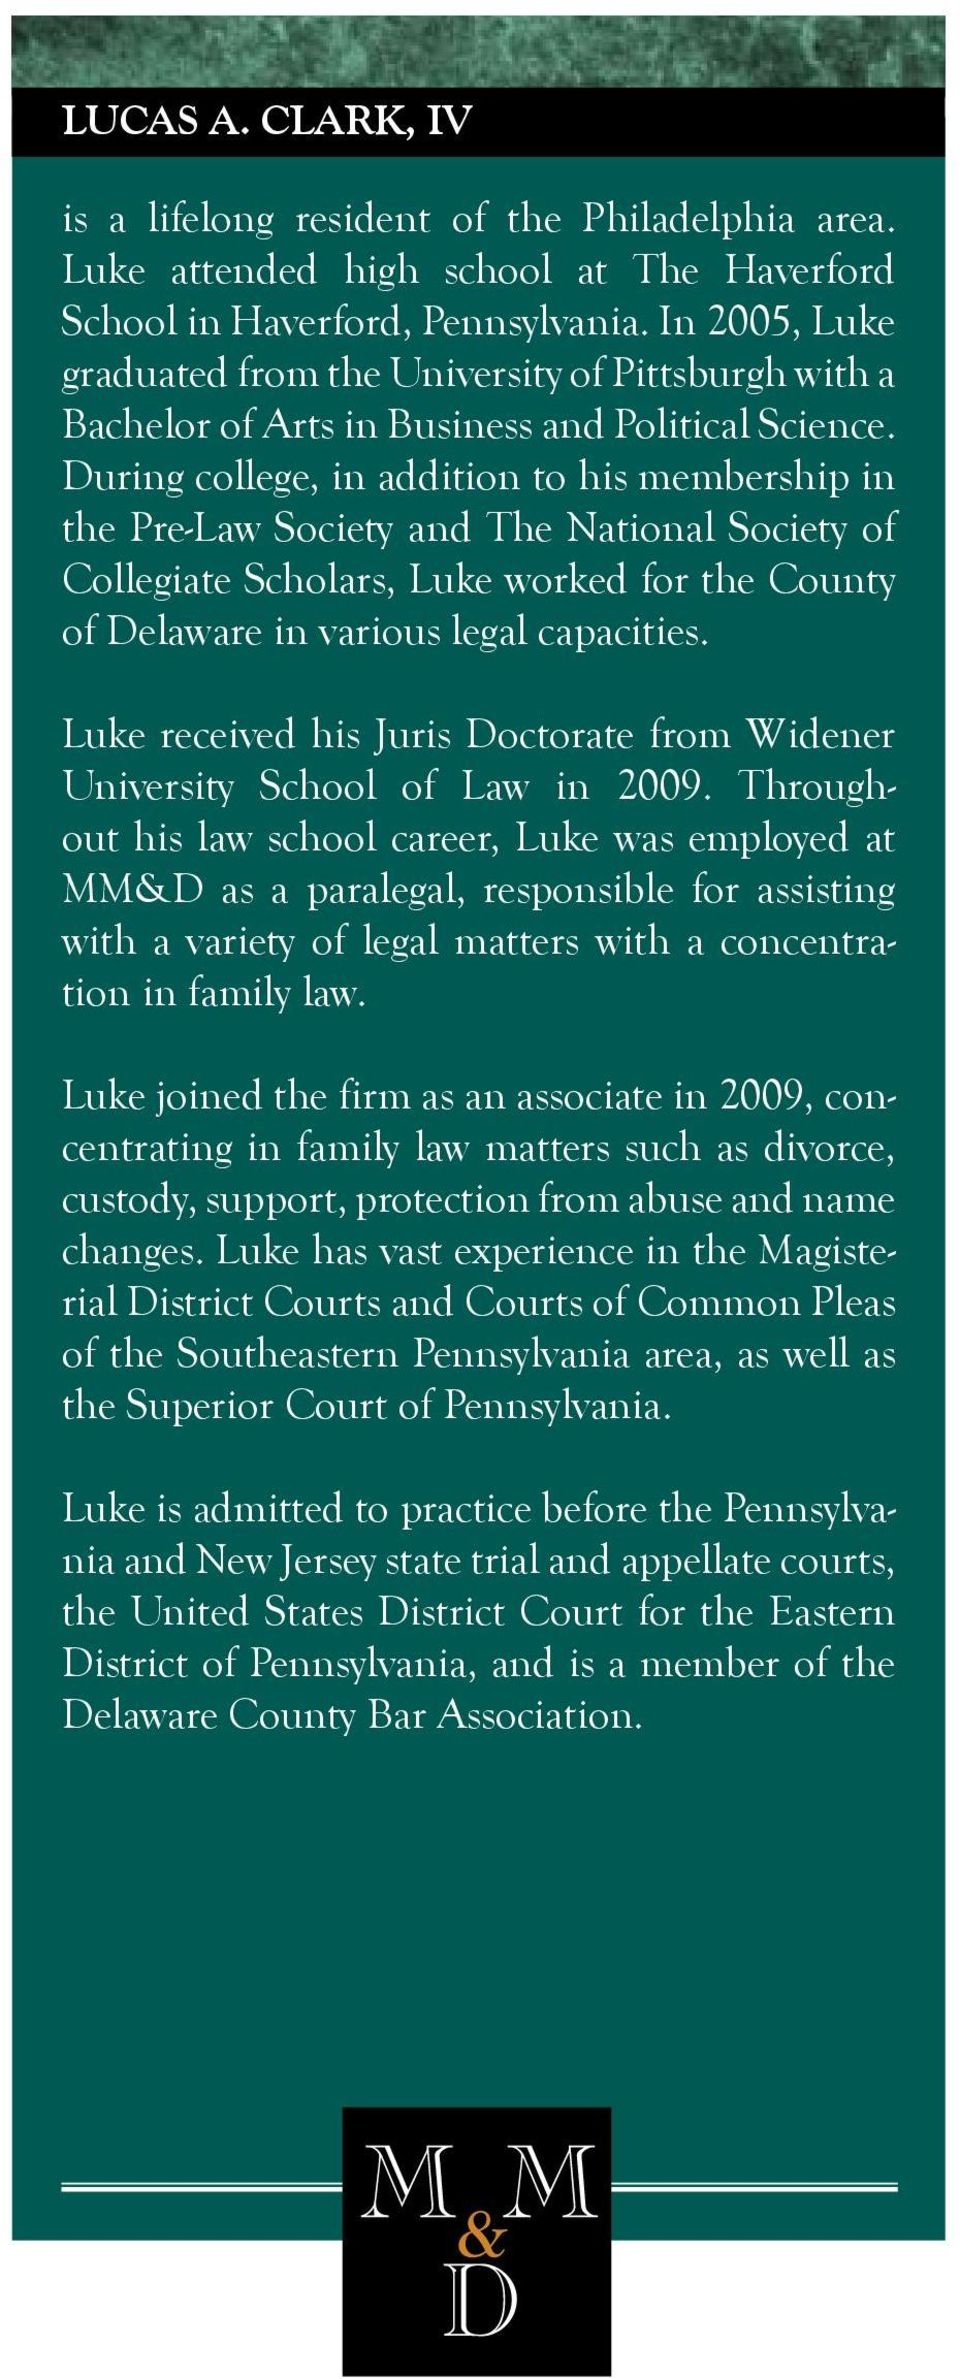 During college, in addition to his membership in the Pre-Law Society and The National Society of Collegiate Scholars, Luke worked for the County of Delaware in various legal capacities.